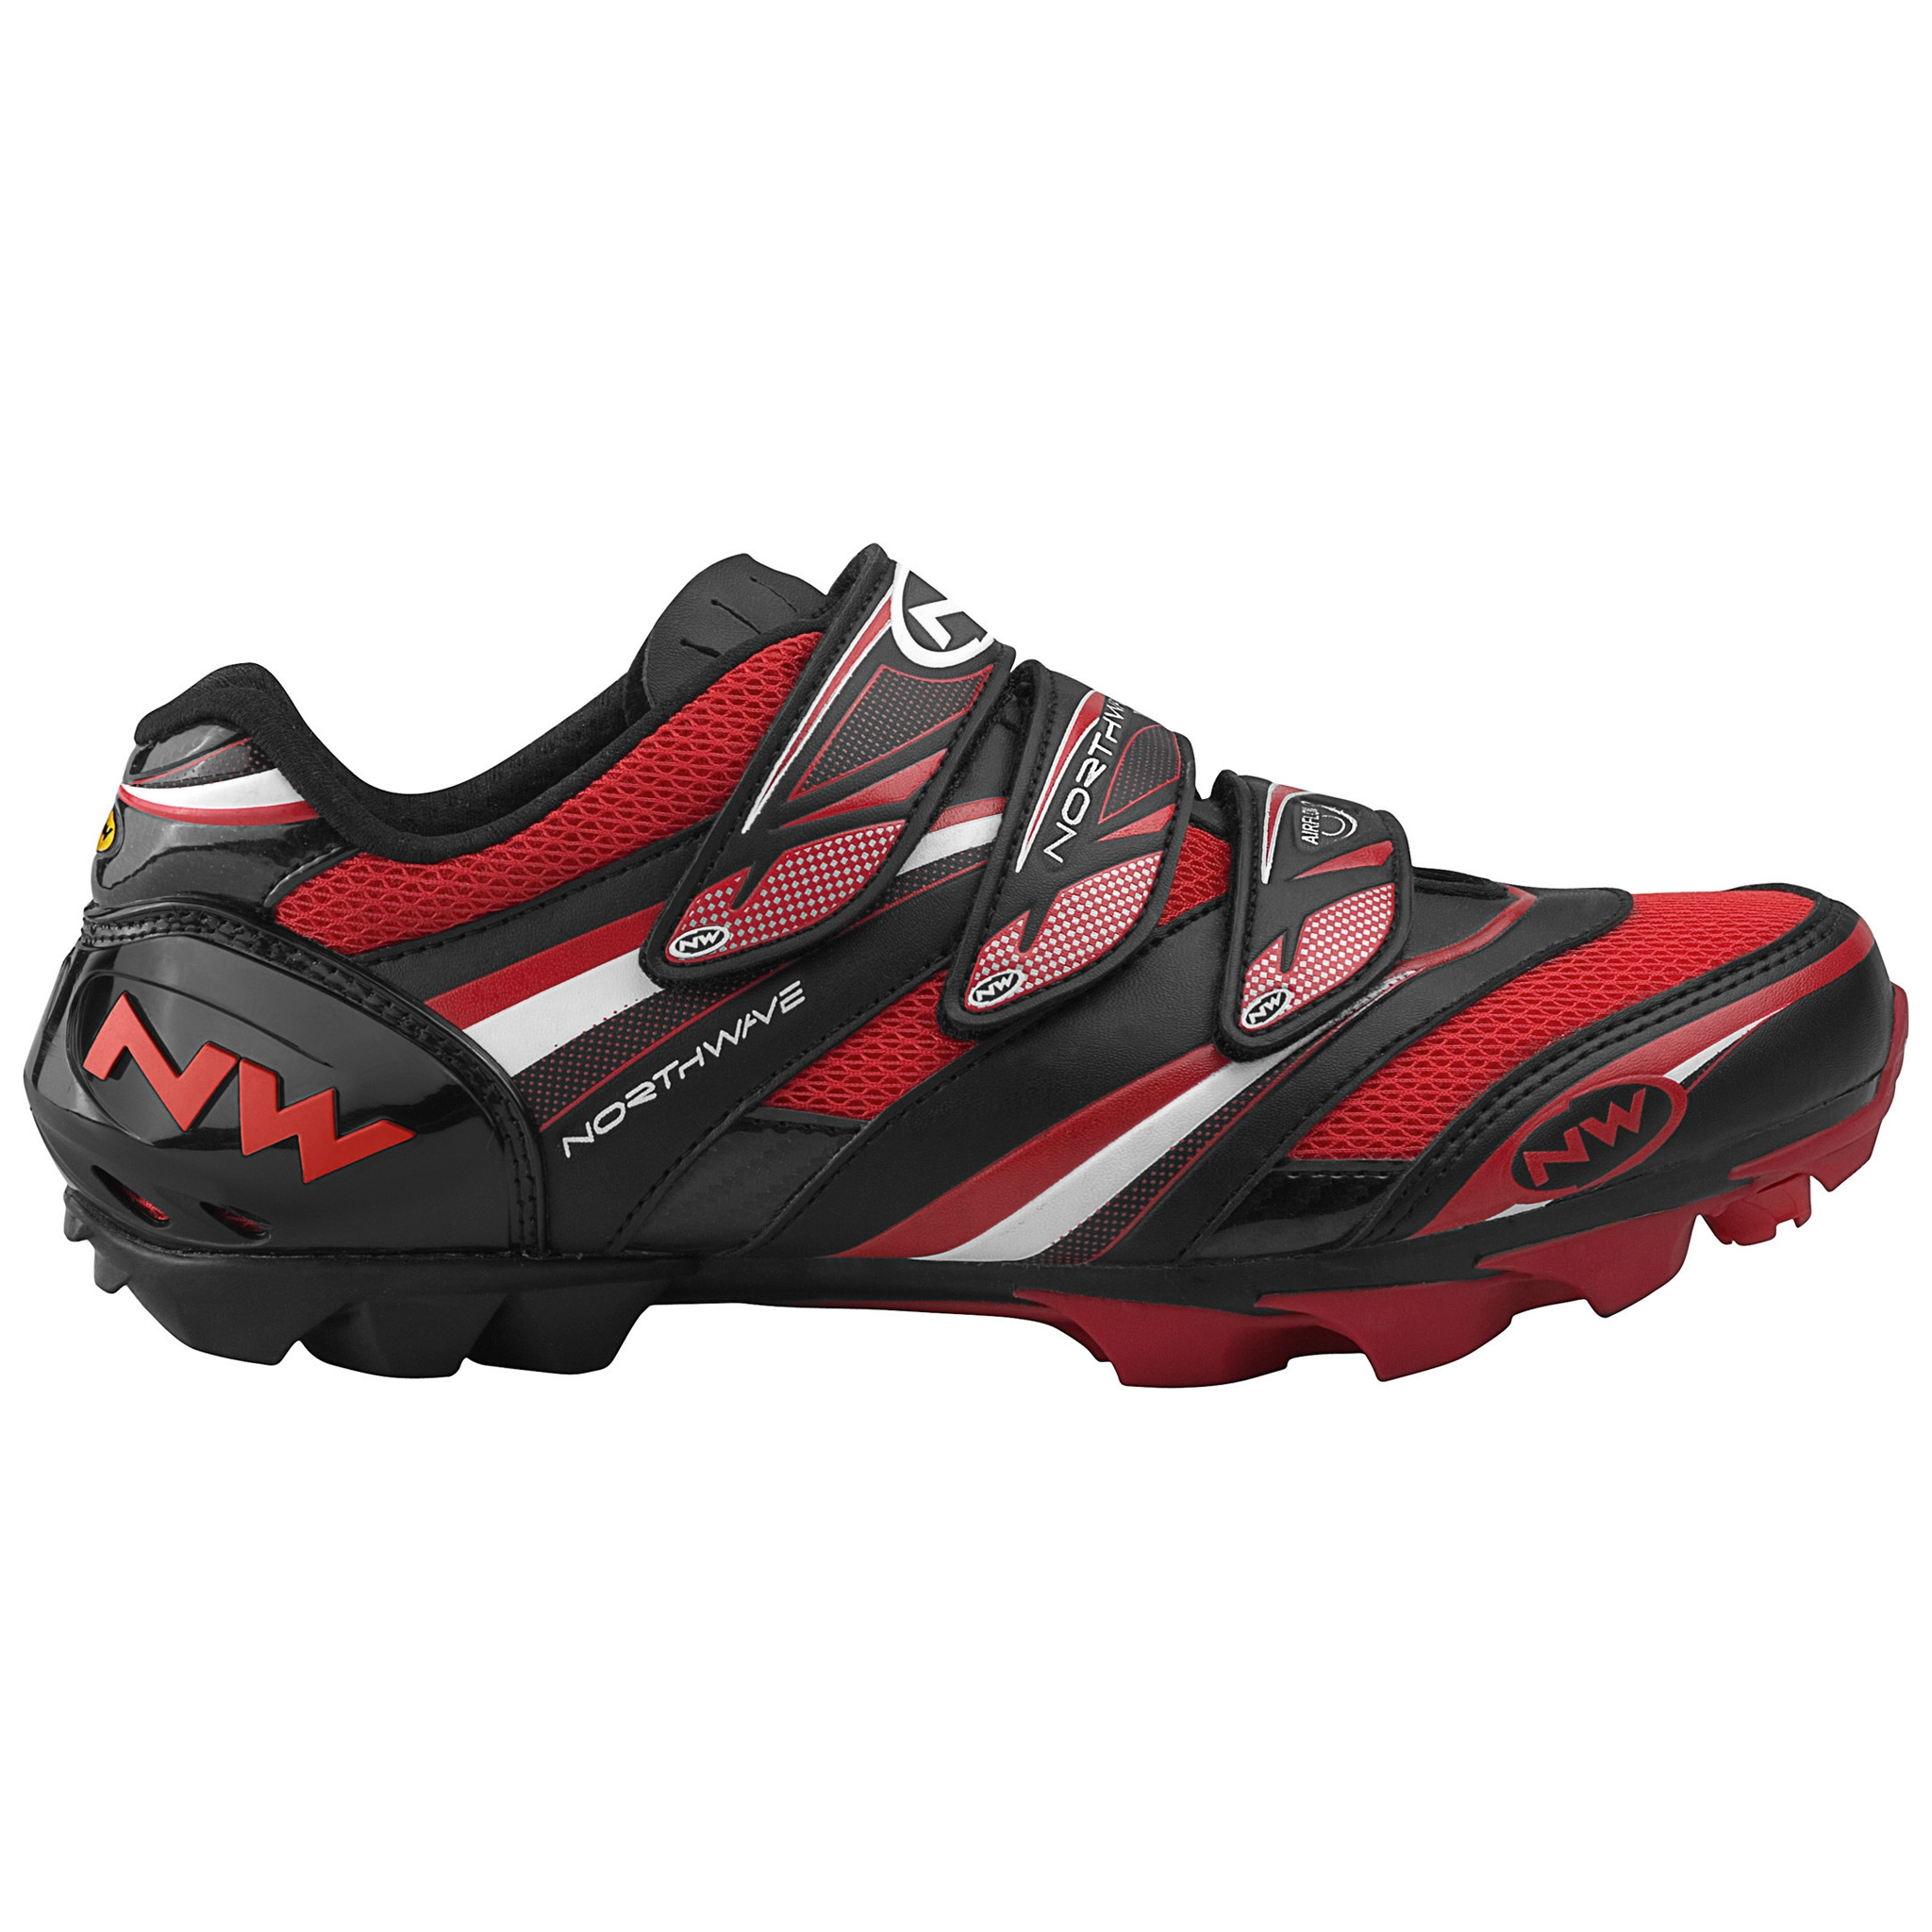 NORTHWAVE LIZZARD PRO Shoes Black Red 2011   Probikeshop Wallpaper